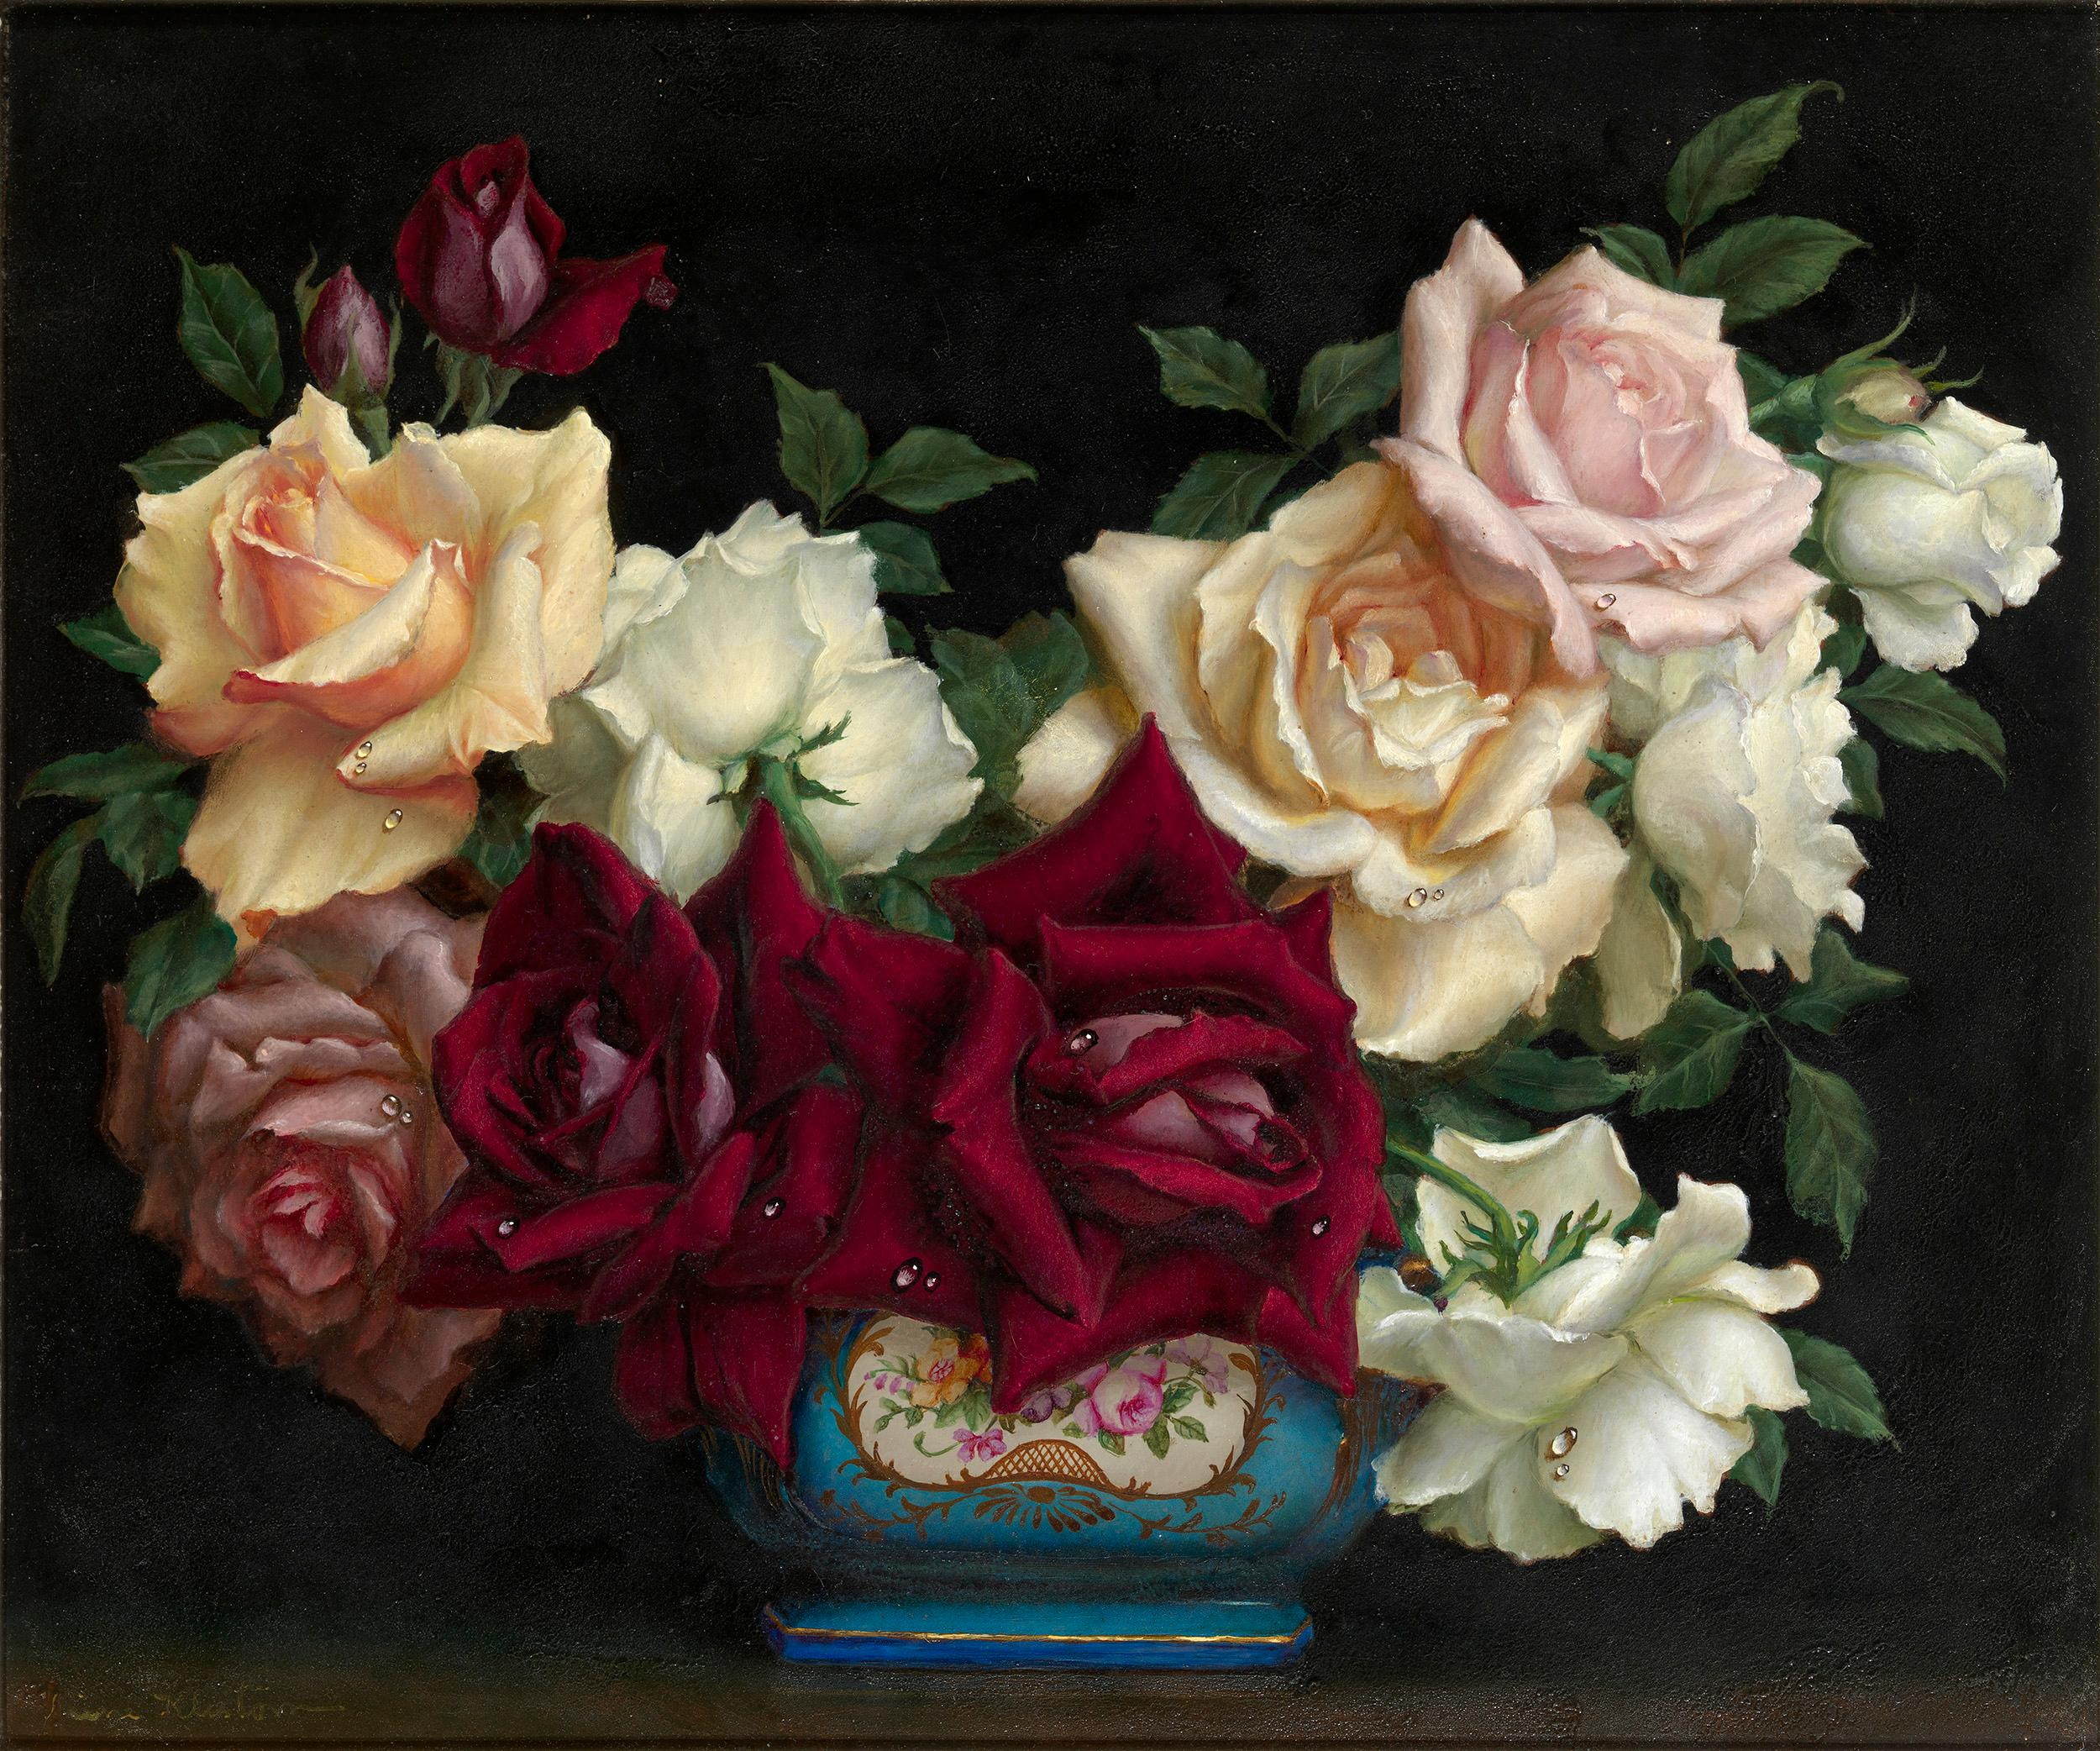 Still Life with Roses by Irene Klestova